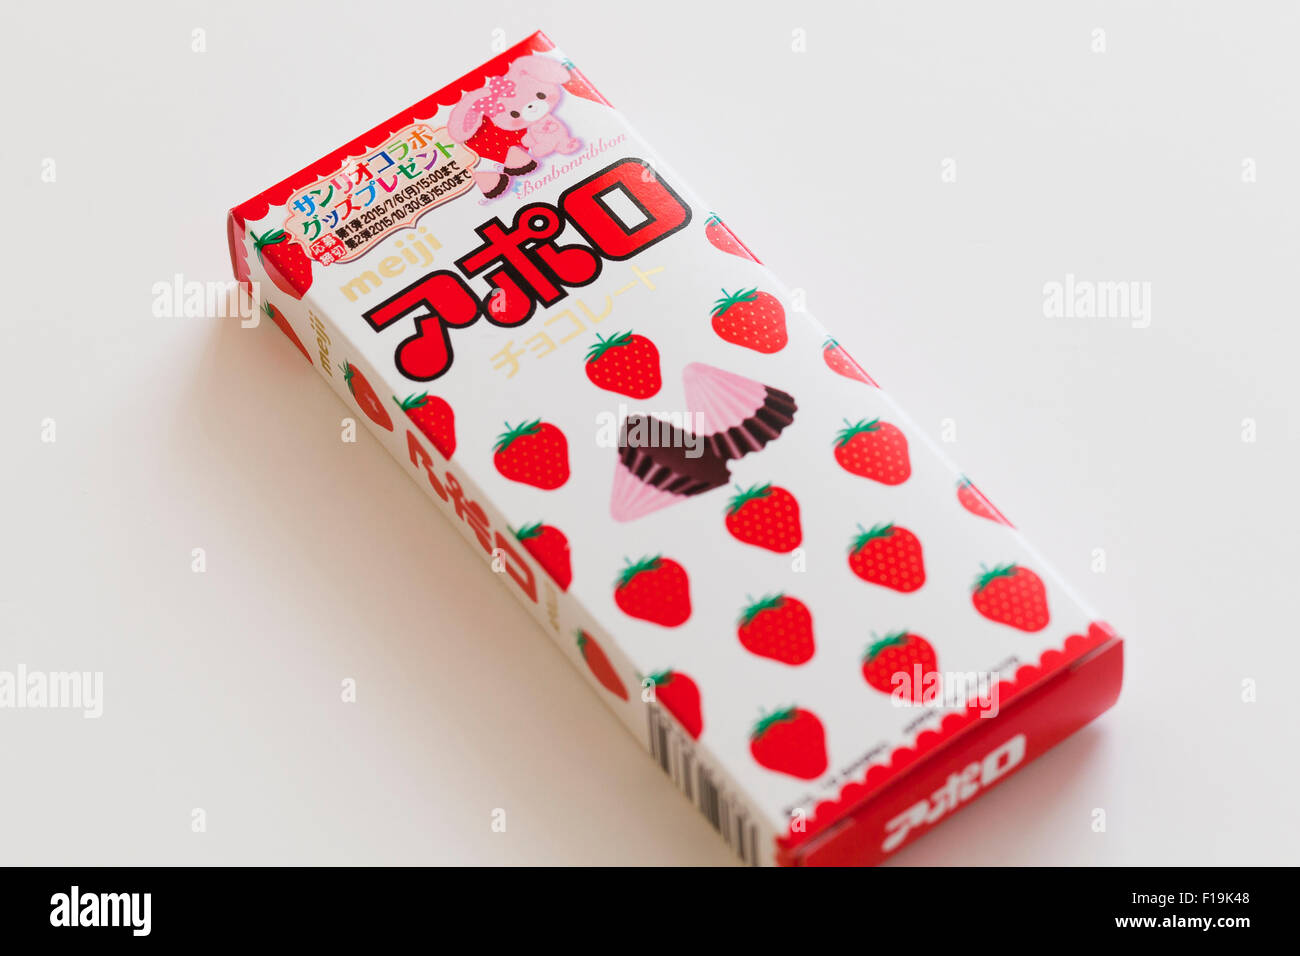 Meiji Apollo Japanese Strawberry Chocolate candy package - Stock Image